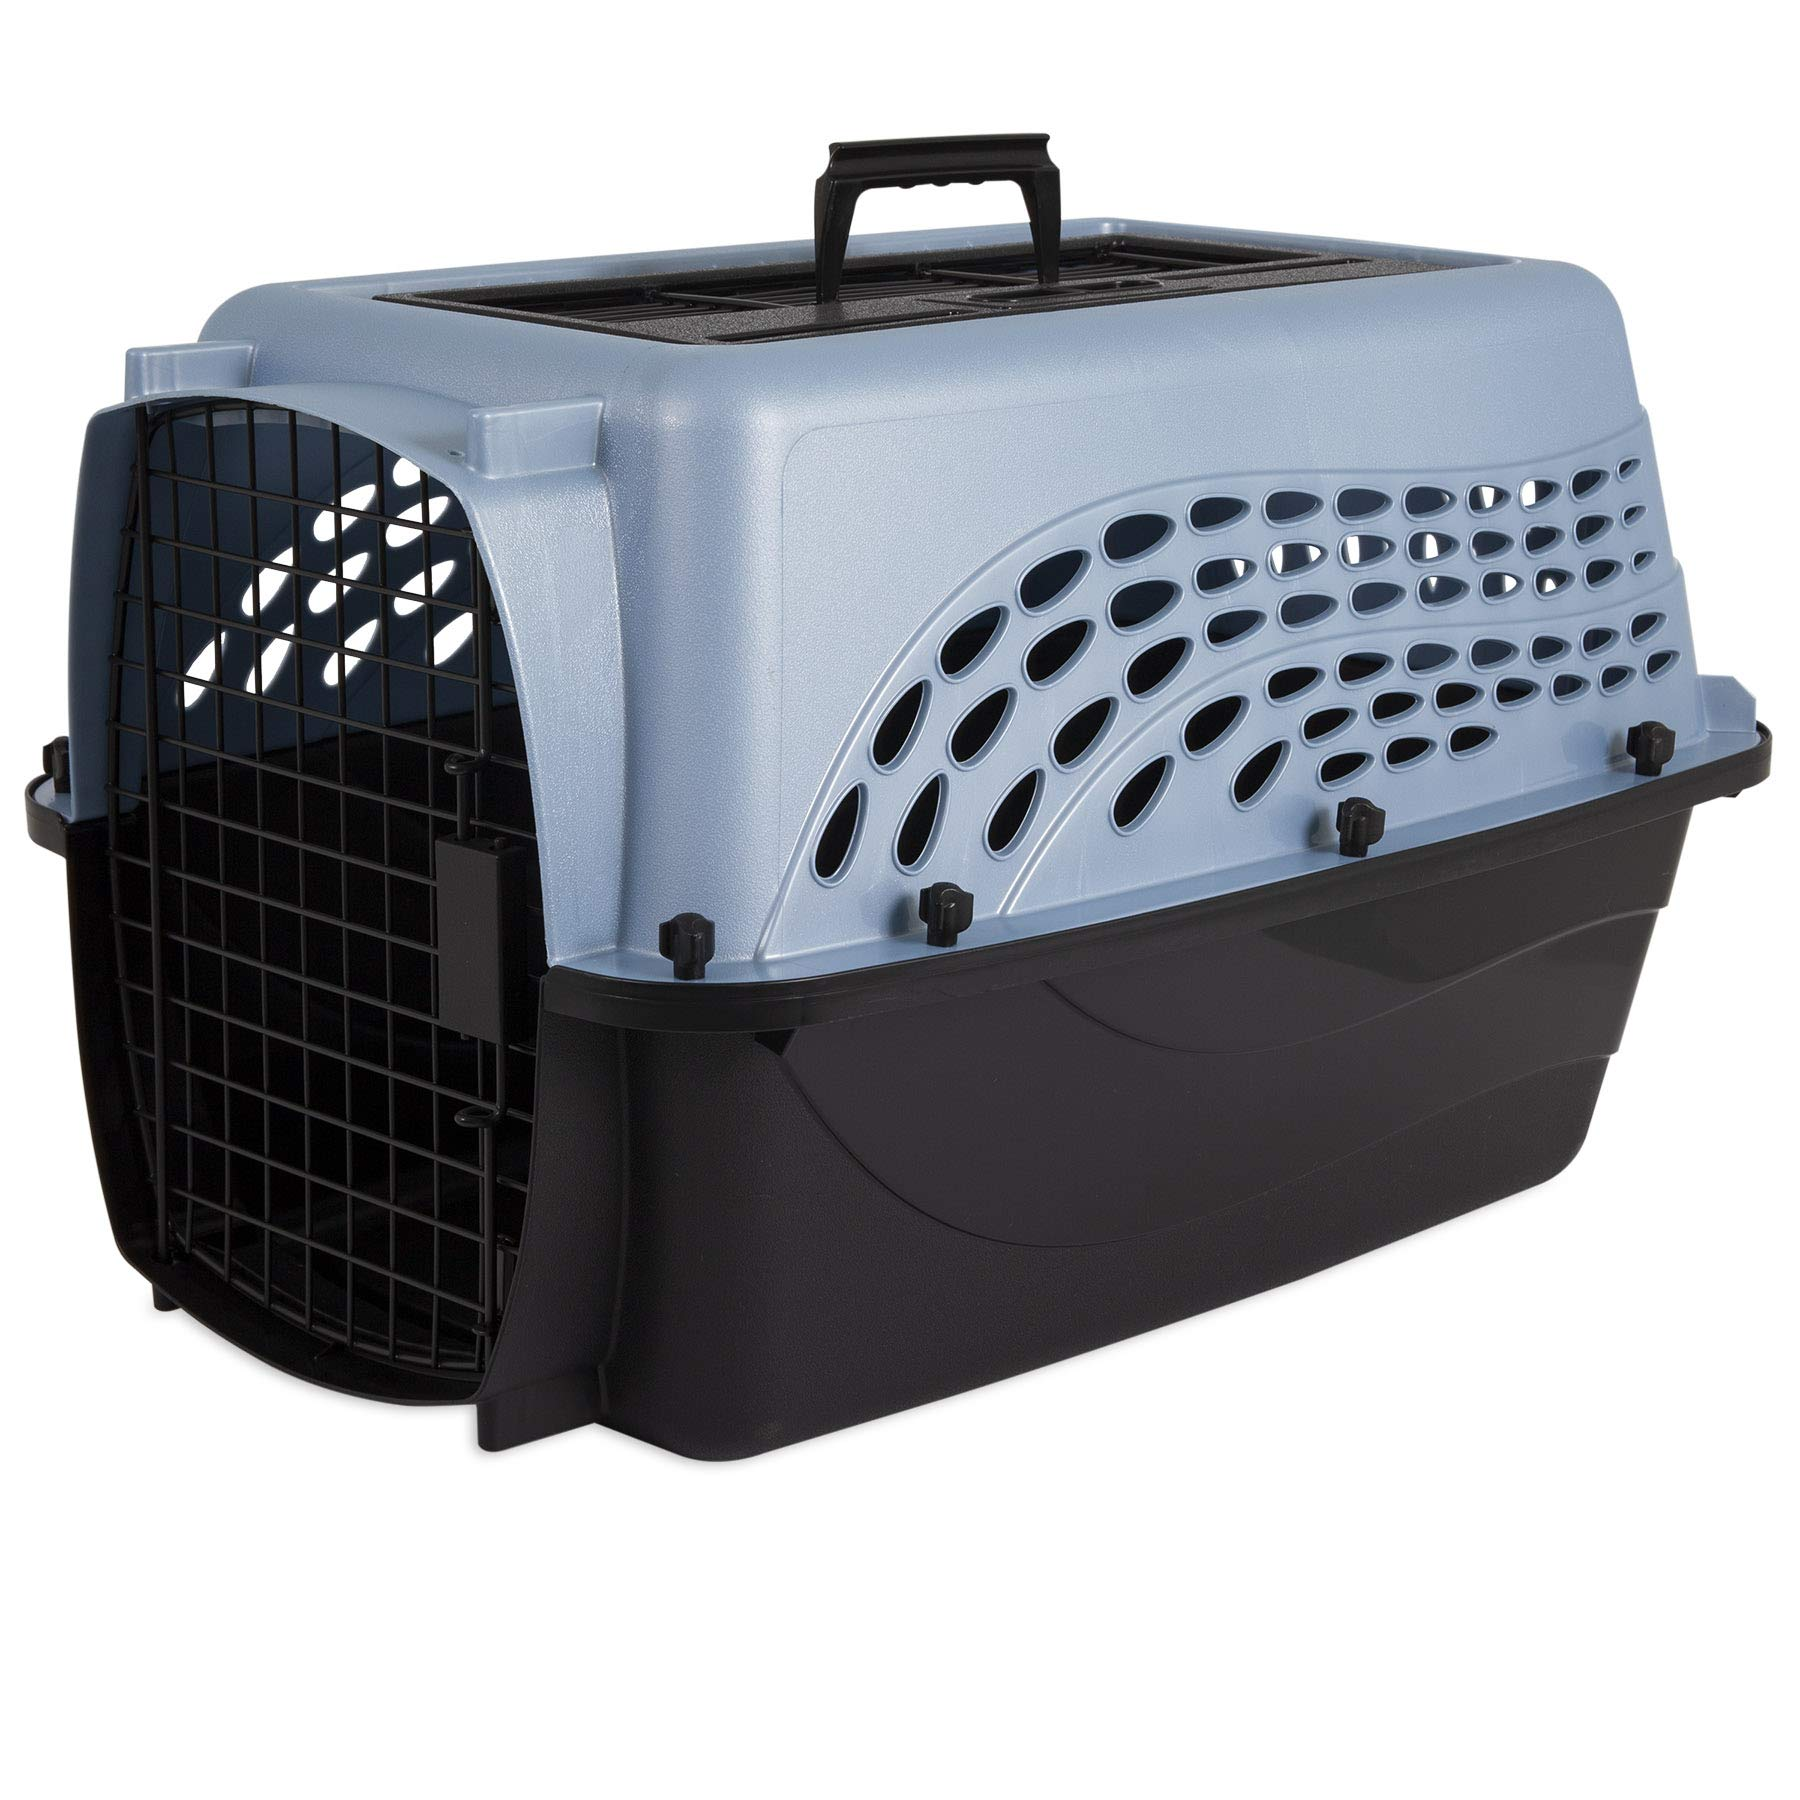 Whisker Doodle 2-Door Easy Load Cat & Dog Kennel-up to 15LBS by Whisker Doodle